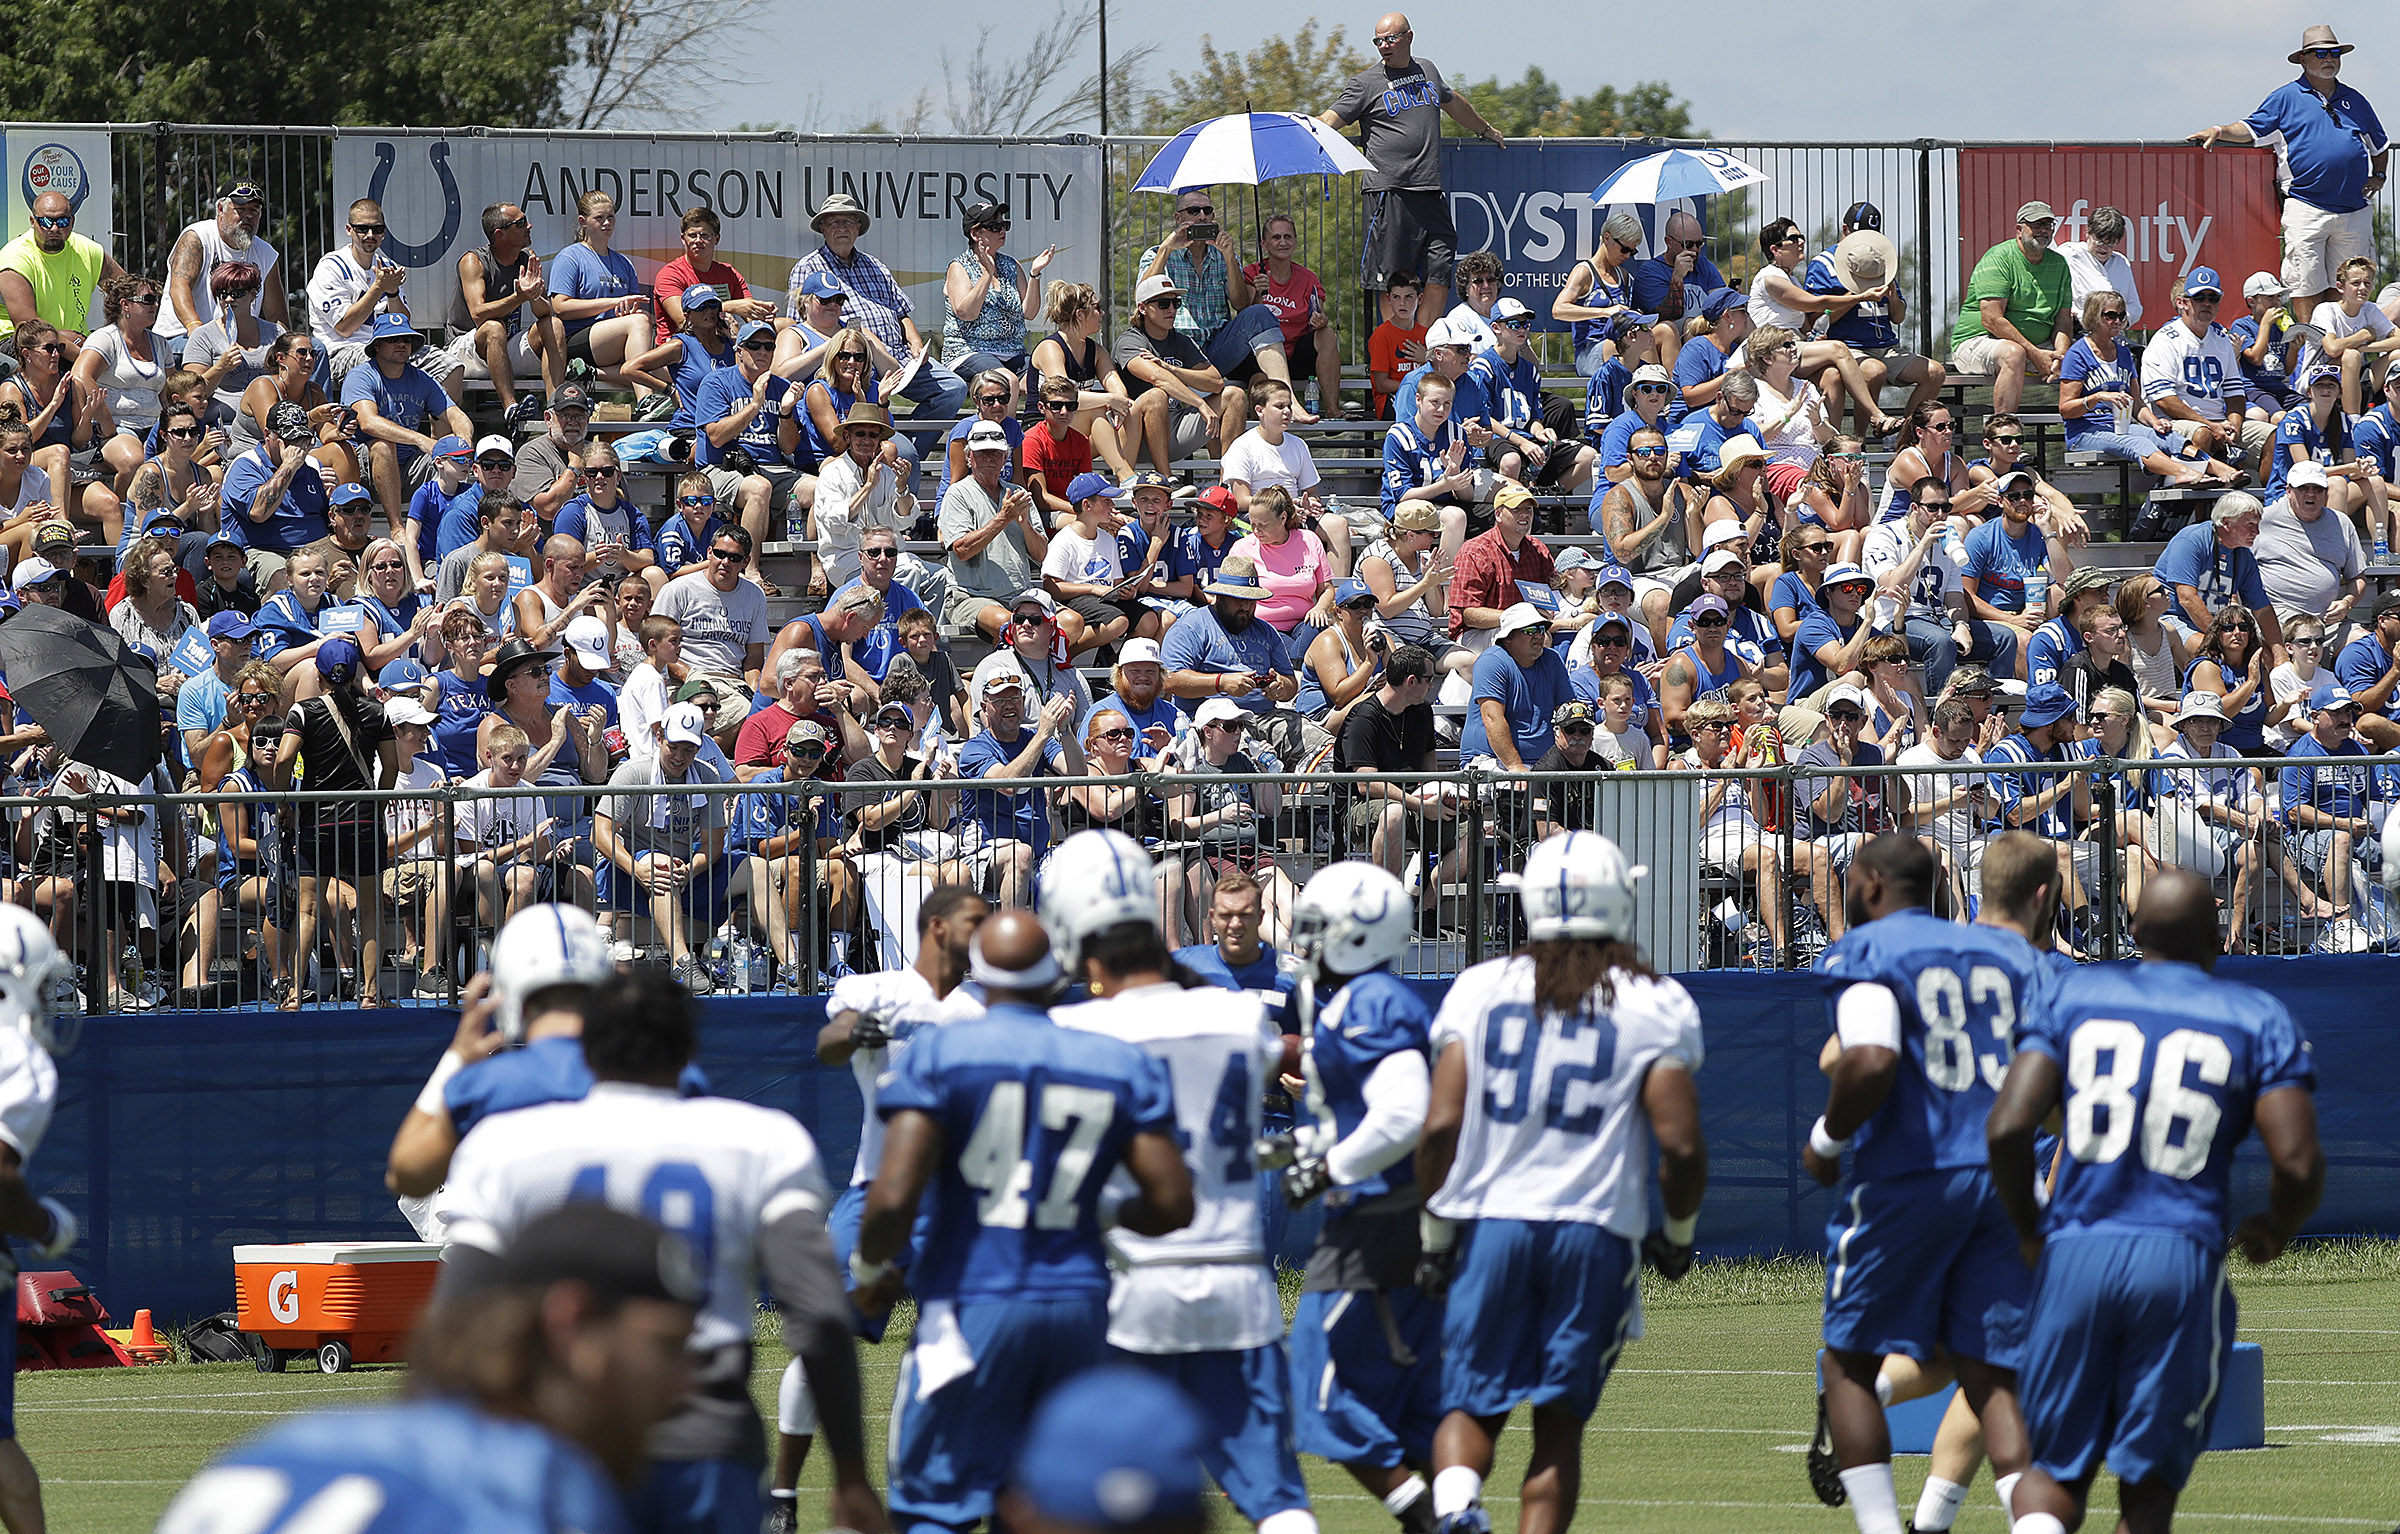 NFL: Indianapolis Colts-Training Camp